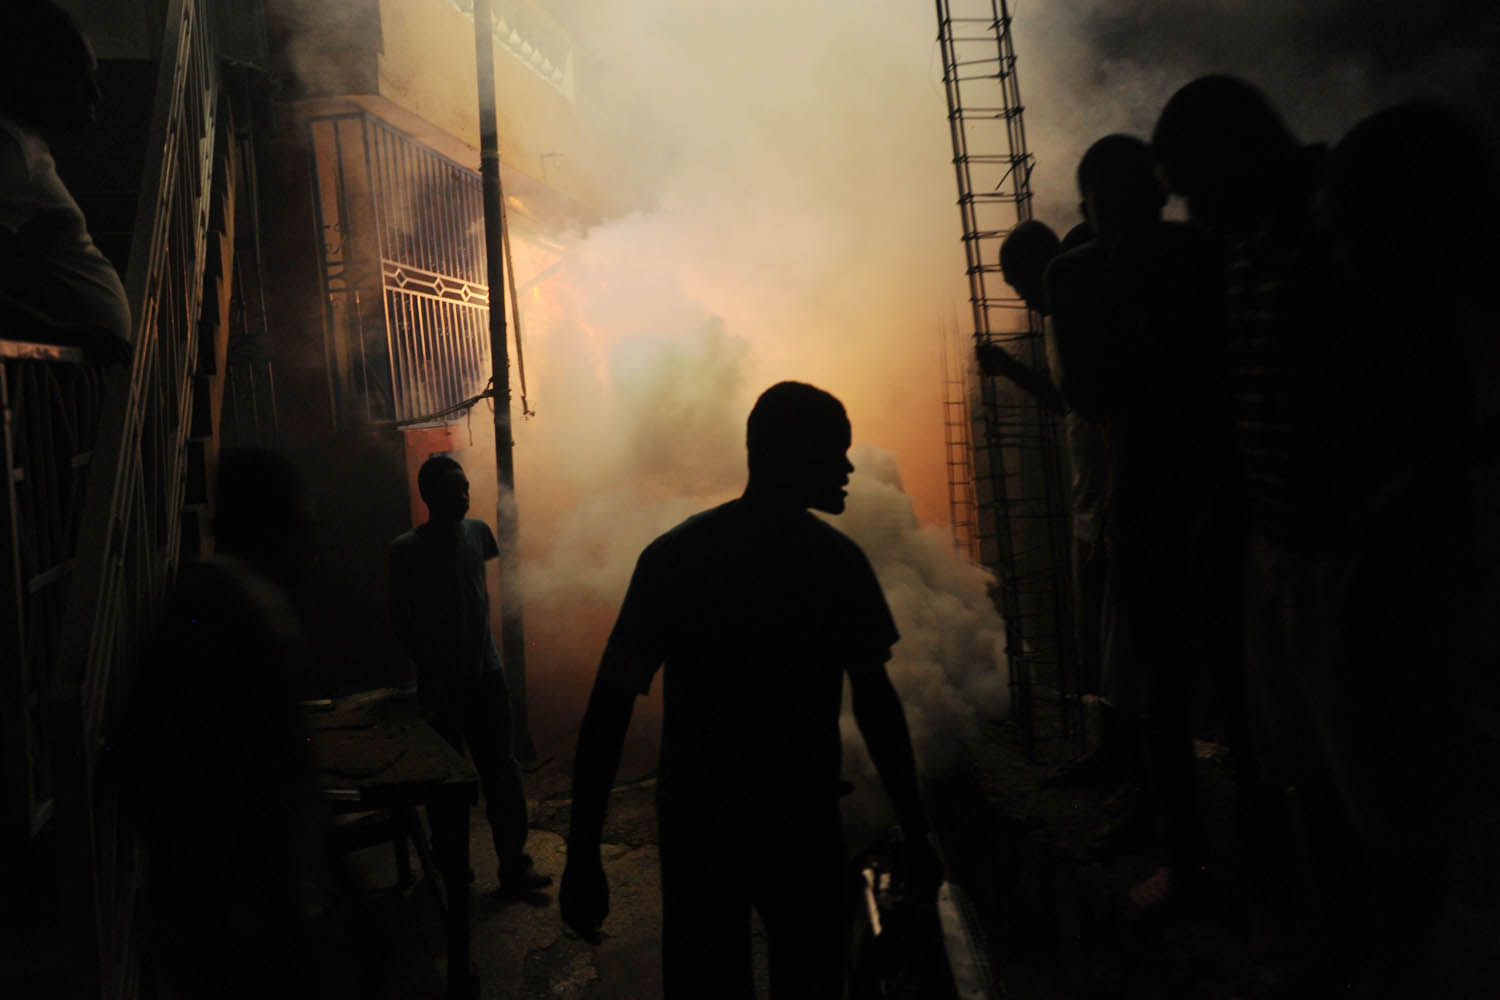 May 21, 2014. Workers from Haiti's  Ministry of Public Health and Population spray chemicals to exterminate mosquitoes in a neighborhood of Petion Ville in Port-au-Prince.